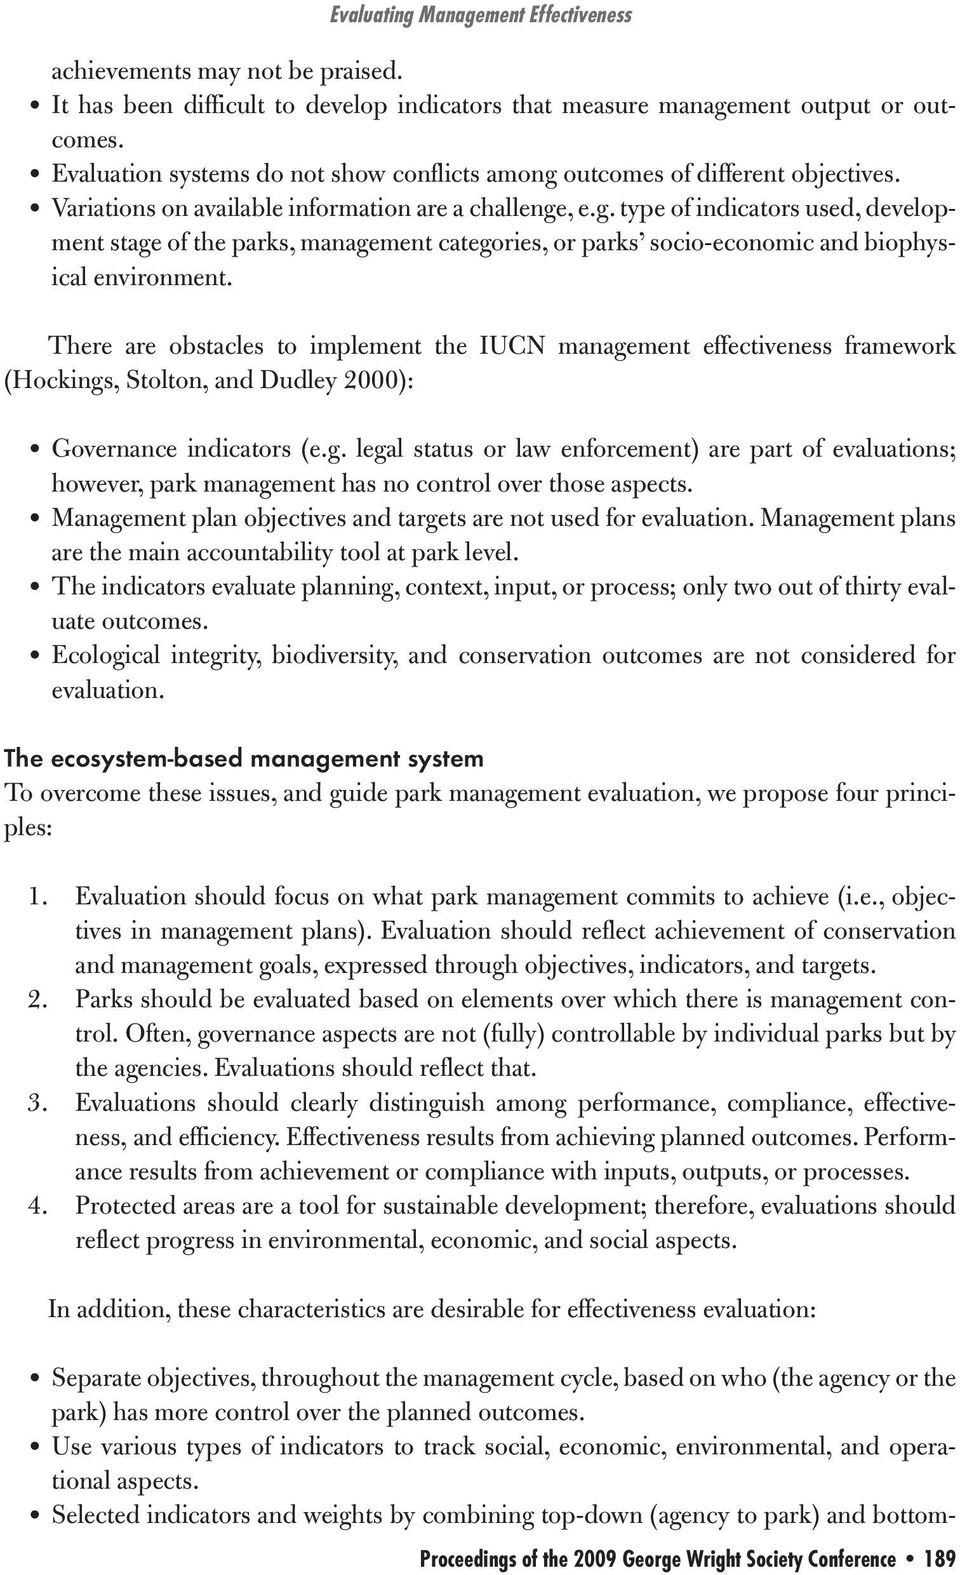 There are obstacles to implement the IUCN management effectiveness framework (Hockings, Stolton, and Dudley 2000): Governance indicators (e.g. legal status or law enforcement) are part of evaluations; however, park management has no control over those aspects.